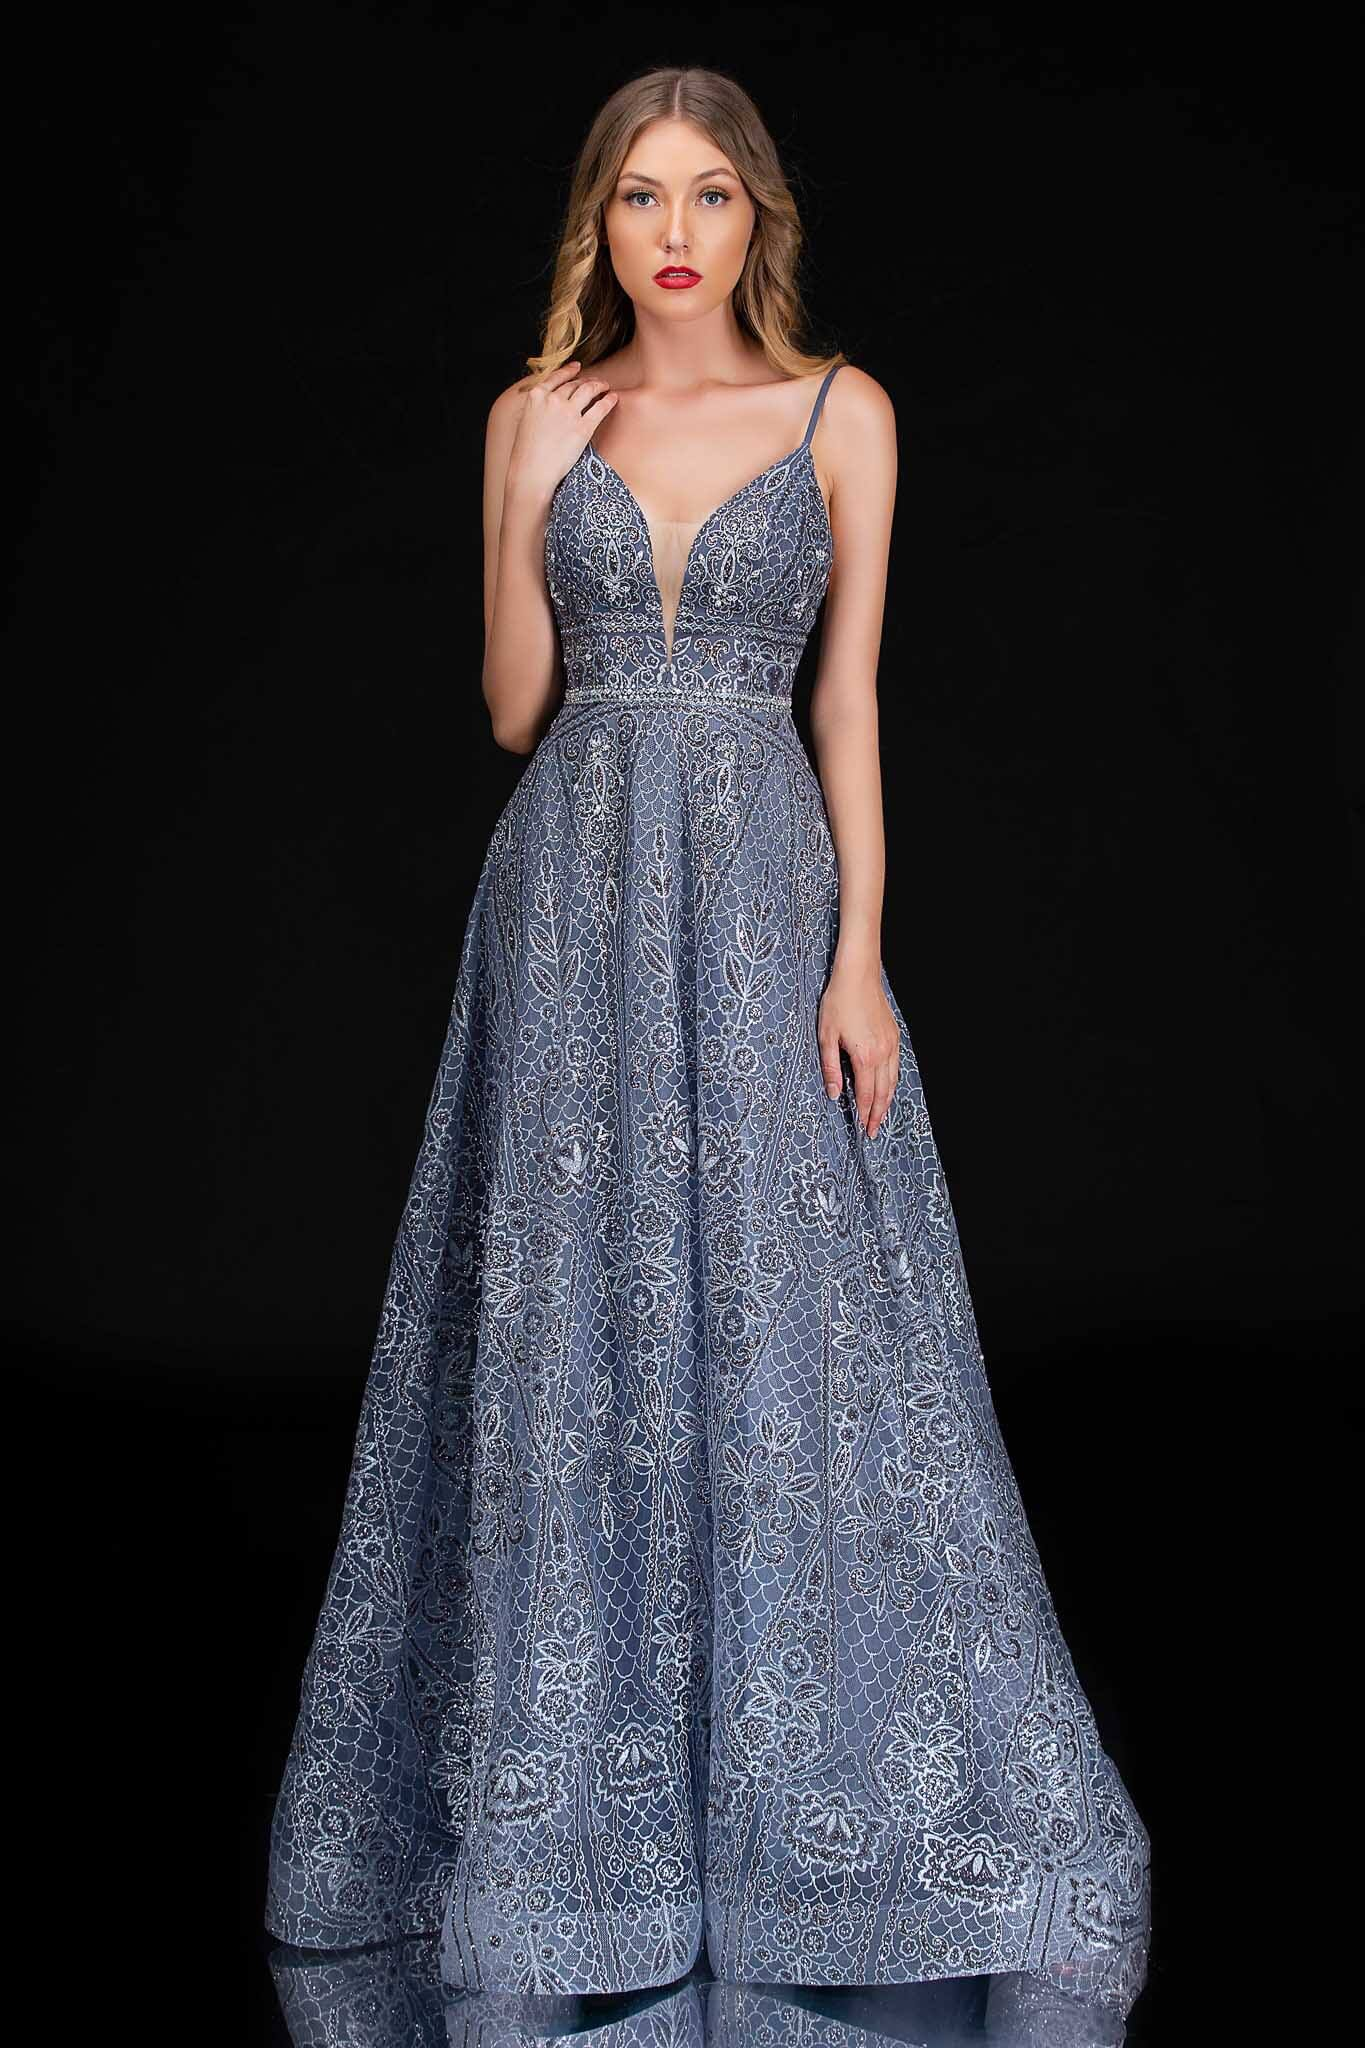 Style 8187 Nina Canacci Silver Size 10 Prom Tall Height A-line Dress on Queenly